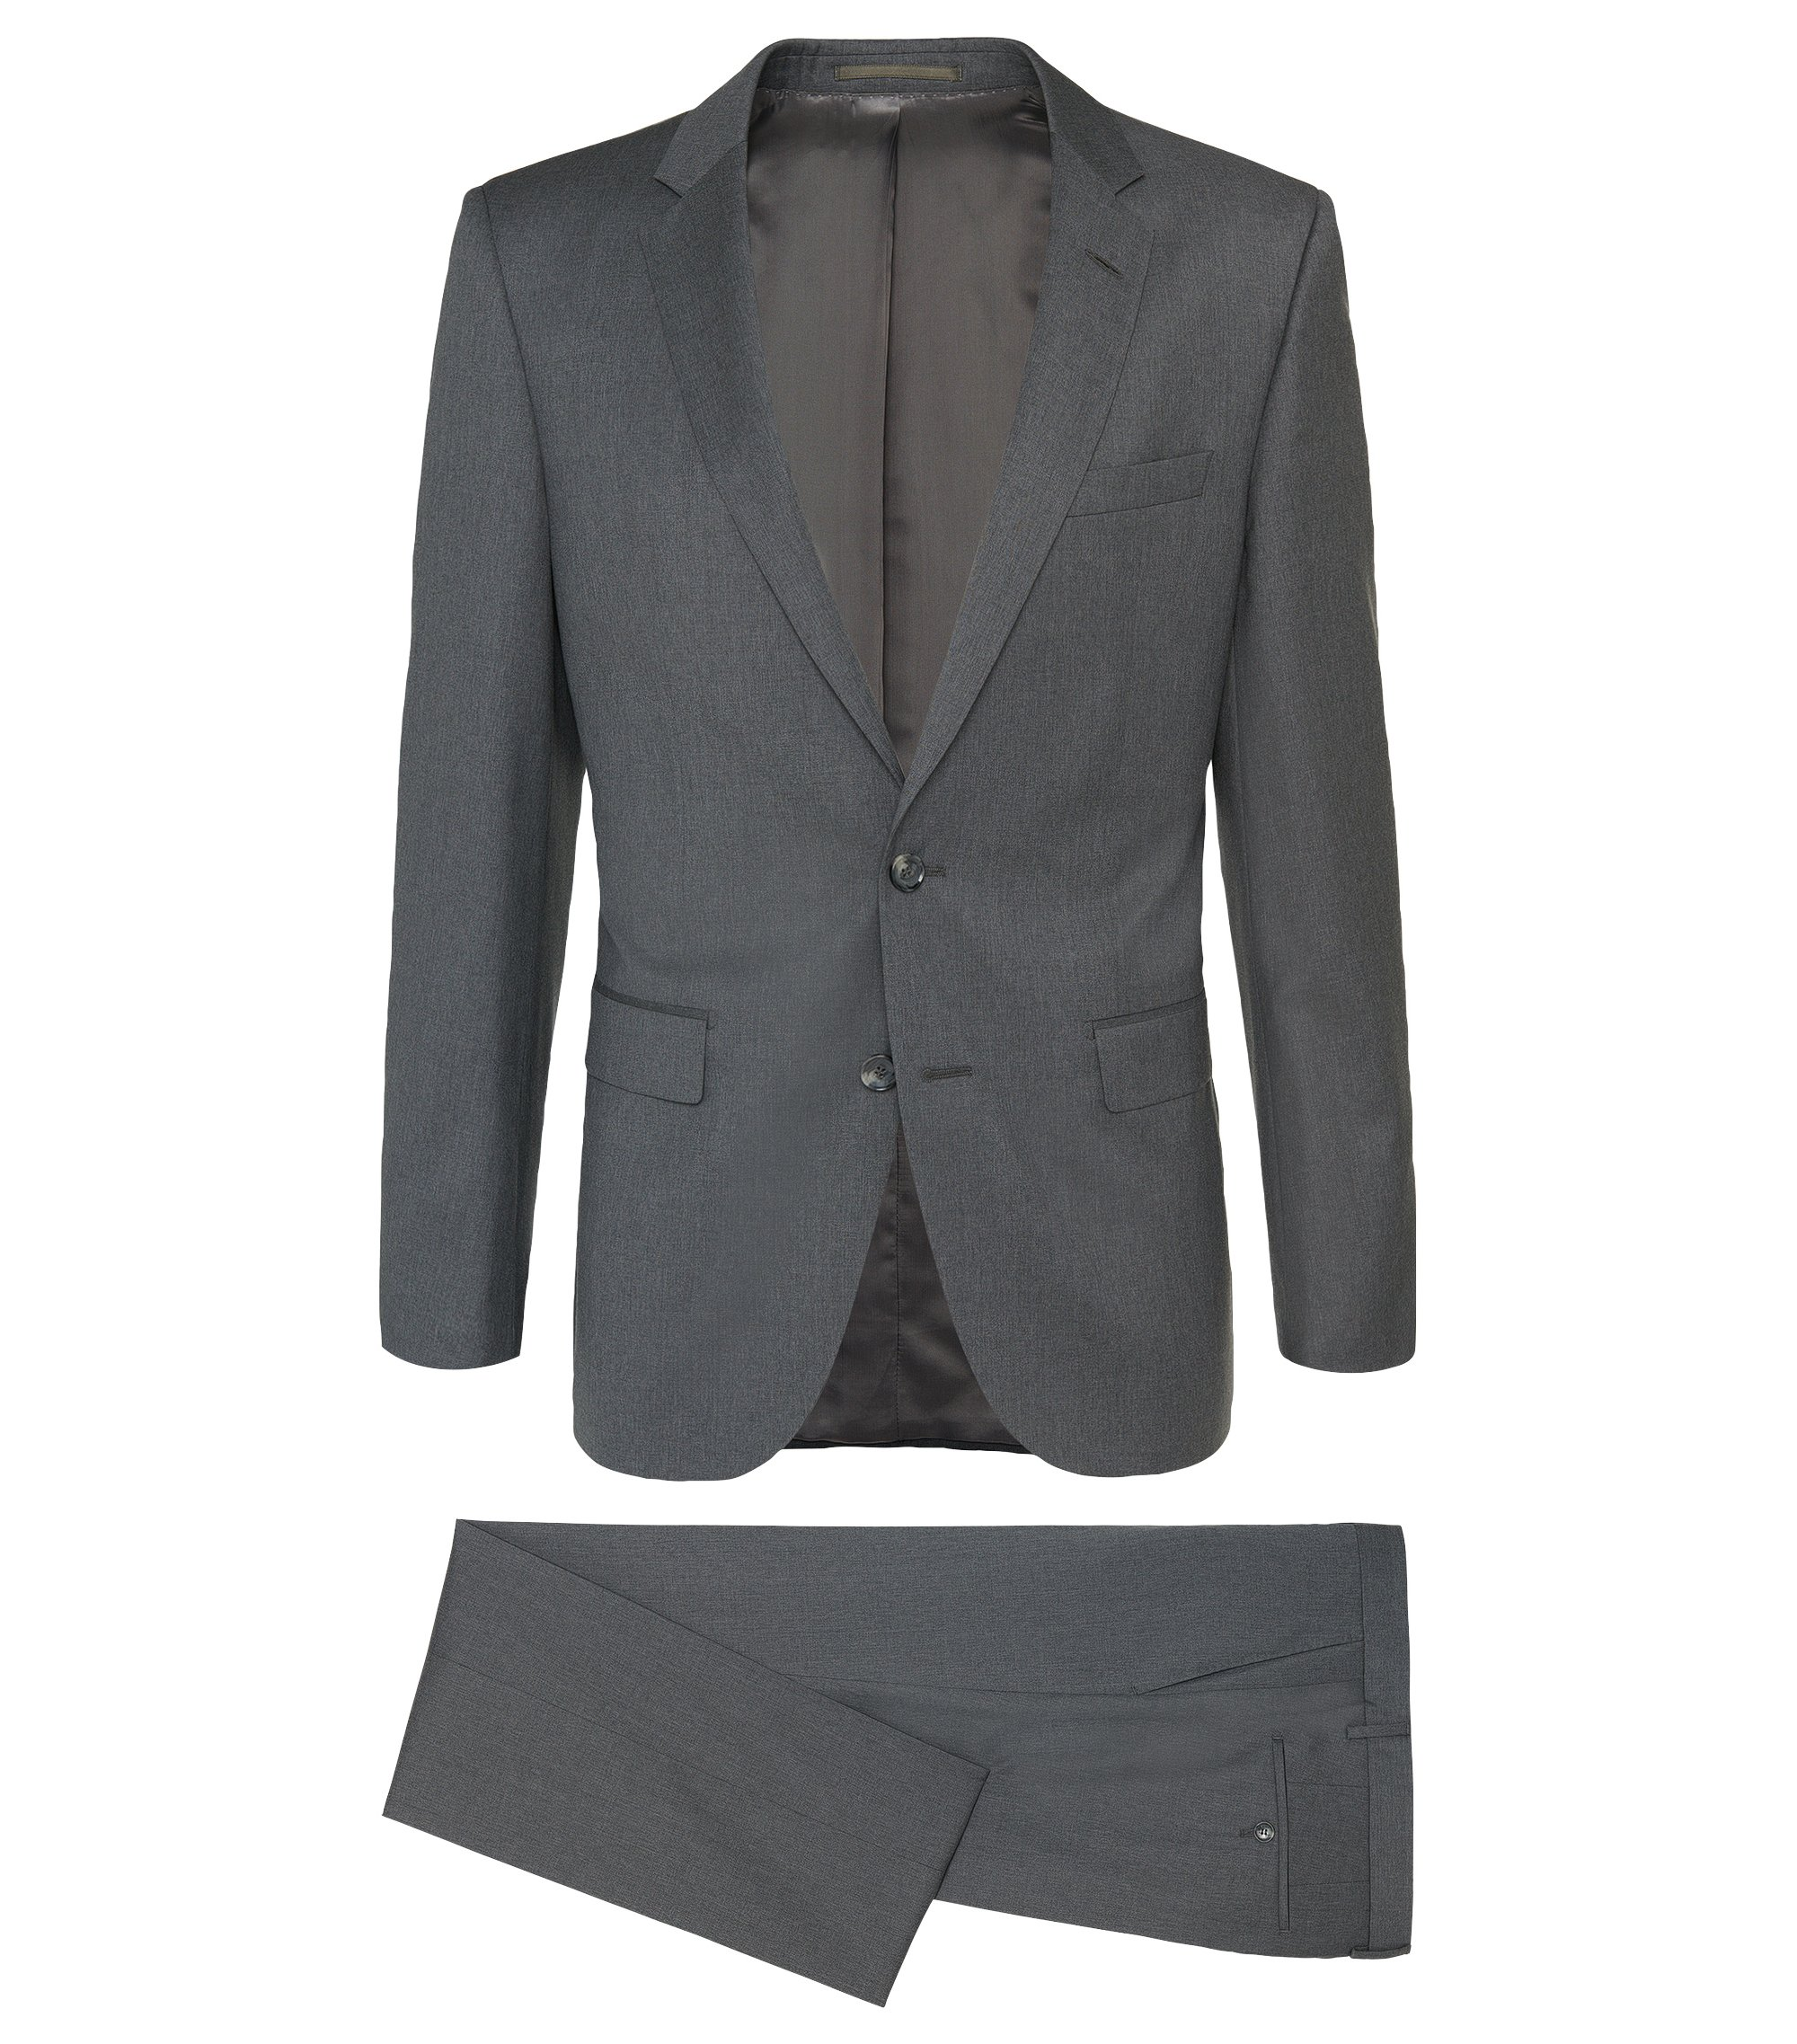 Costume Slim Fit Tailored en laine vierge chinée : « T-Harvers2/Glover1 », Gris